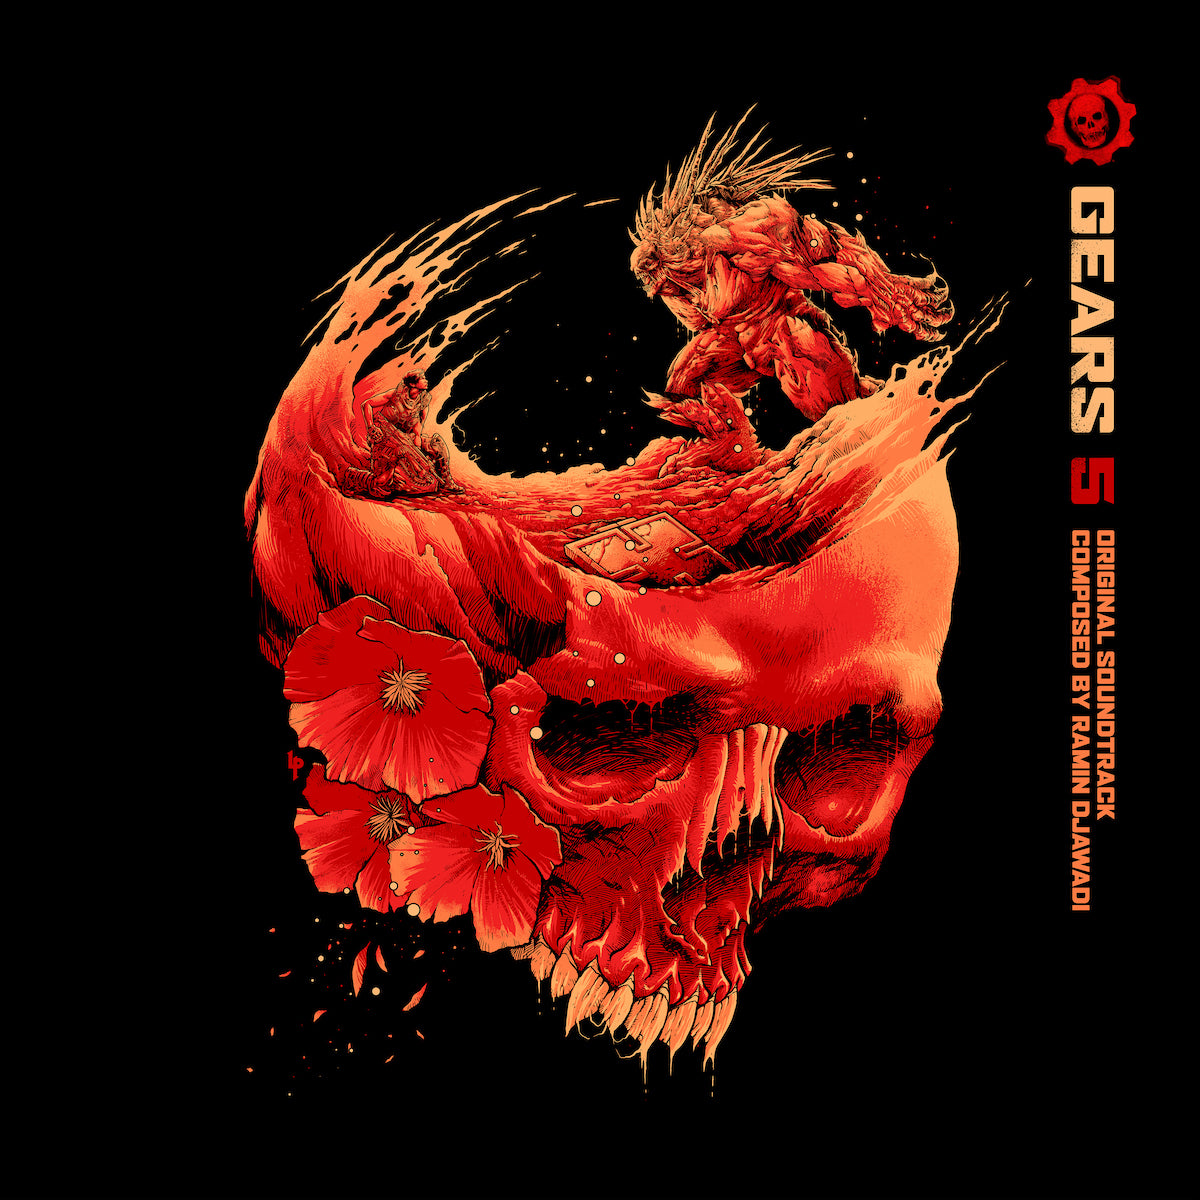 The front cover of the Gears 5 soundtrack vinyl; artwork by Luke Preece.